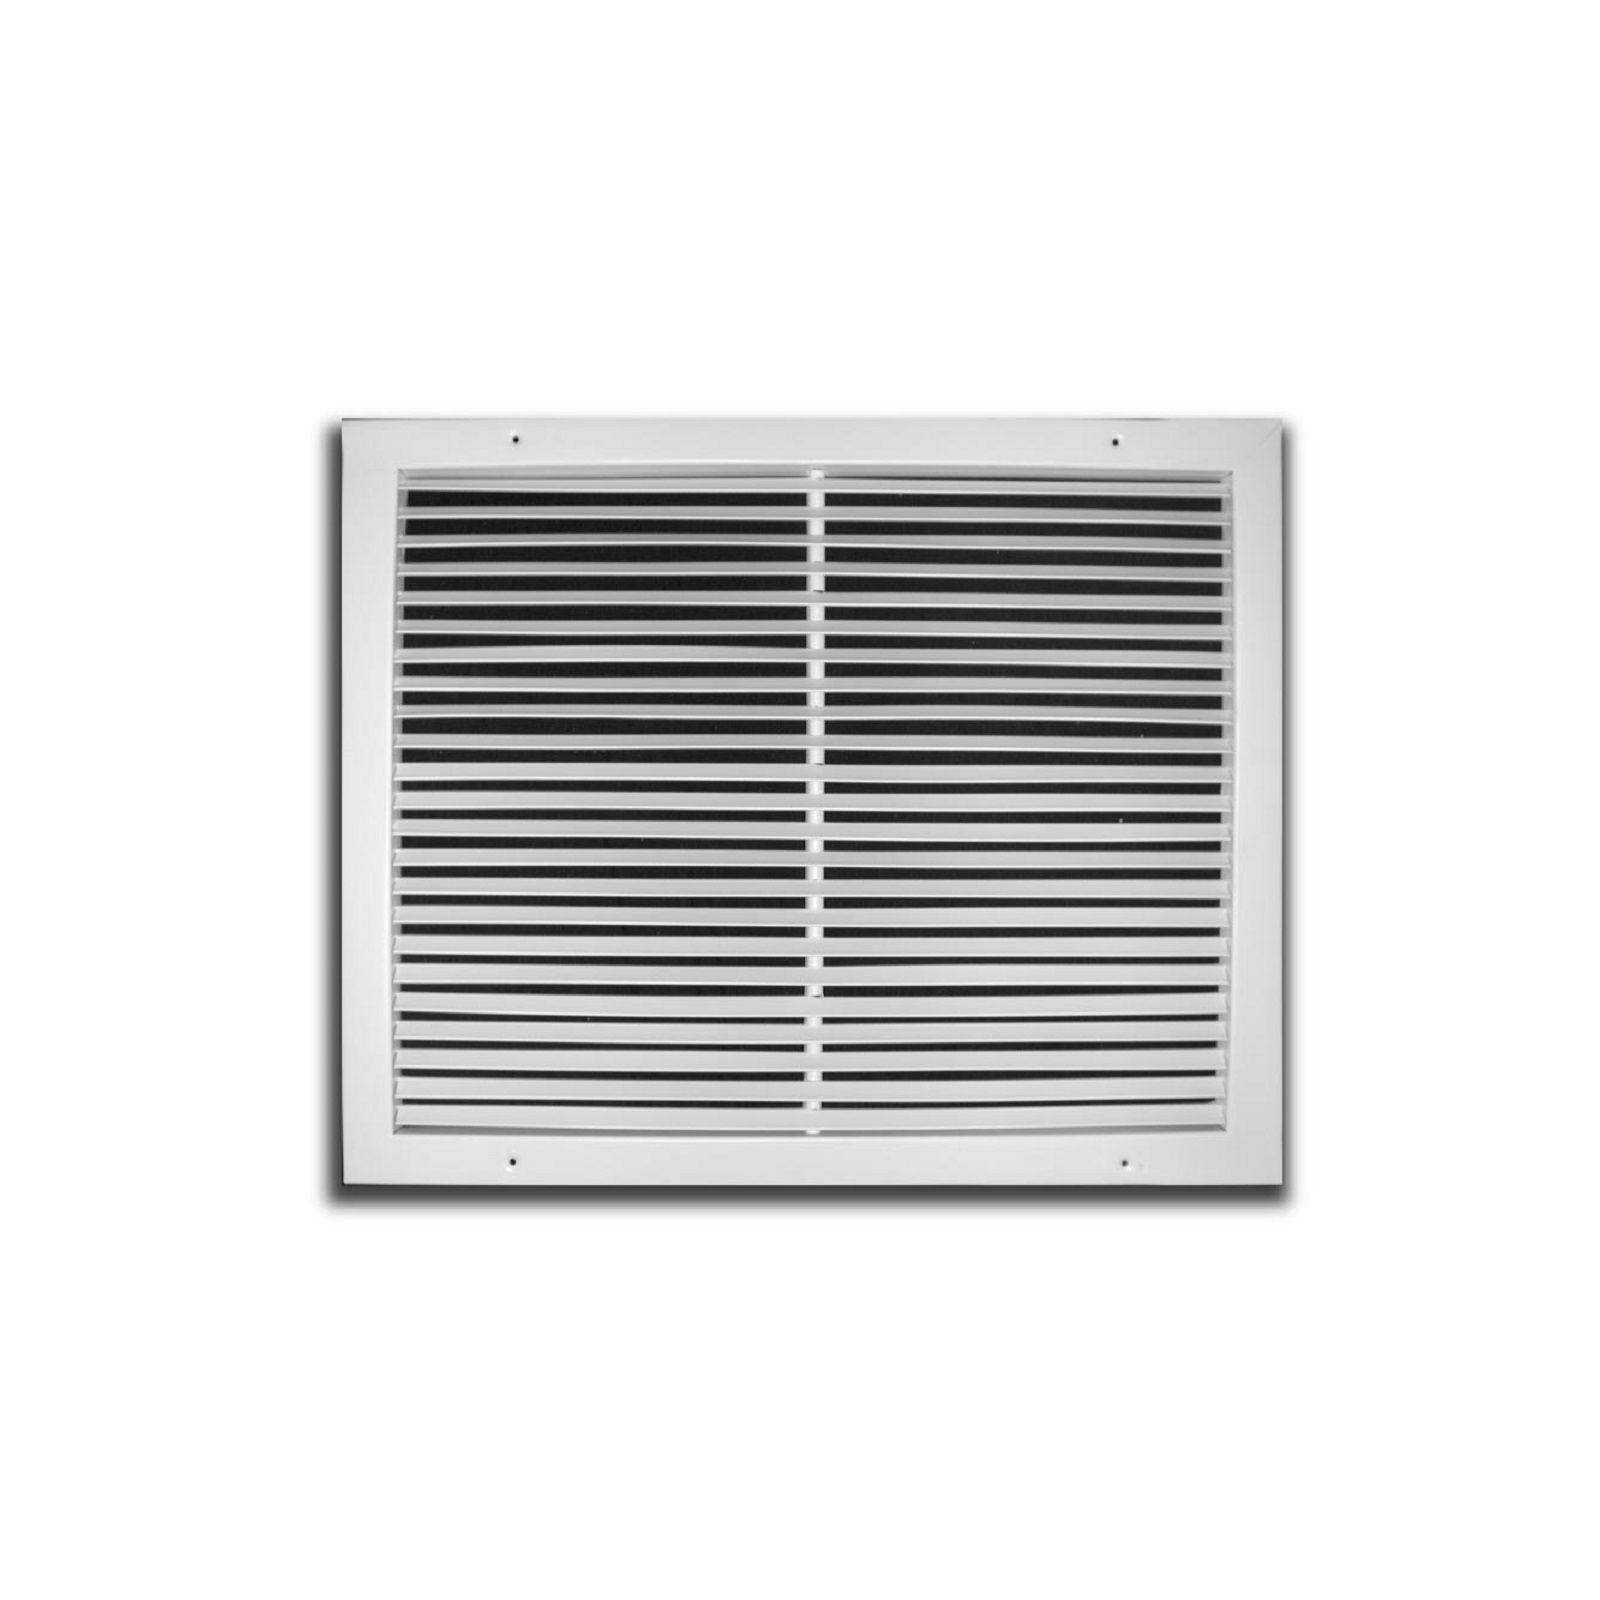 "TRUaire 270 20X14 - Steel Fixed Bar Return Air Grille, White, 20"" X 14"""